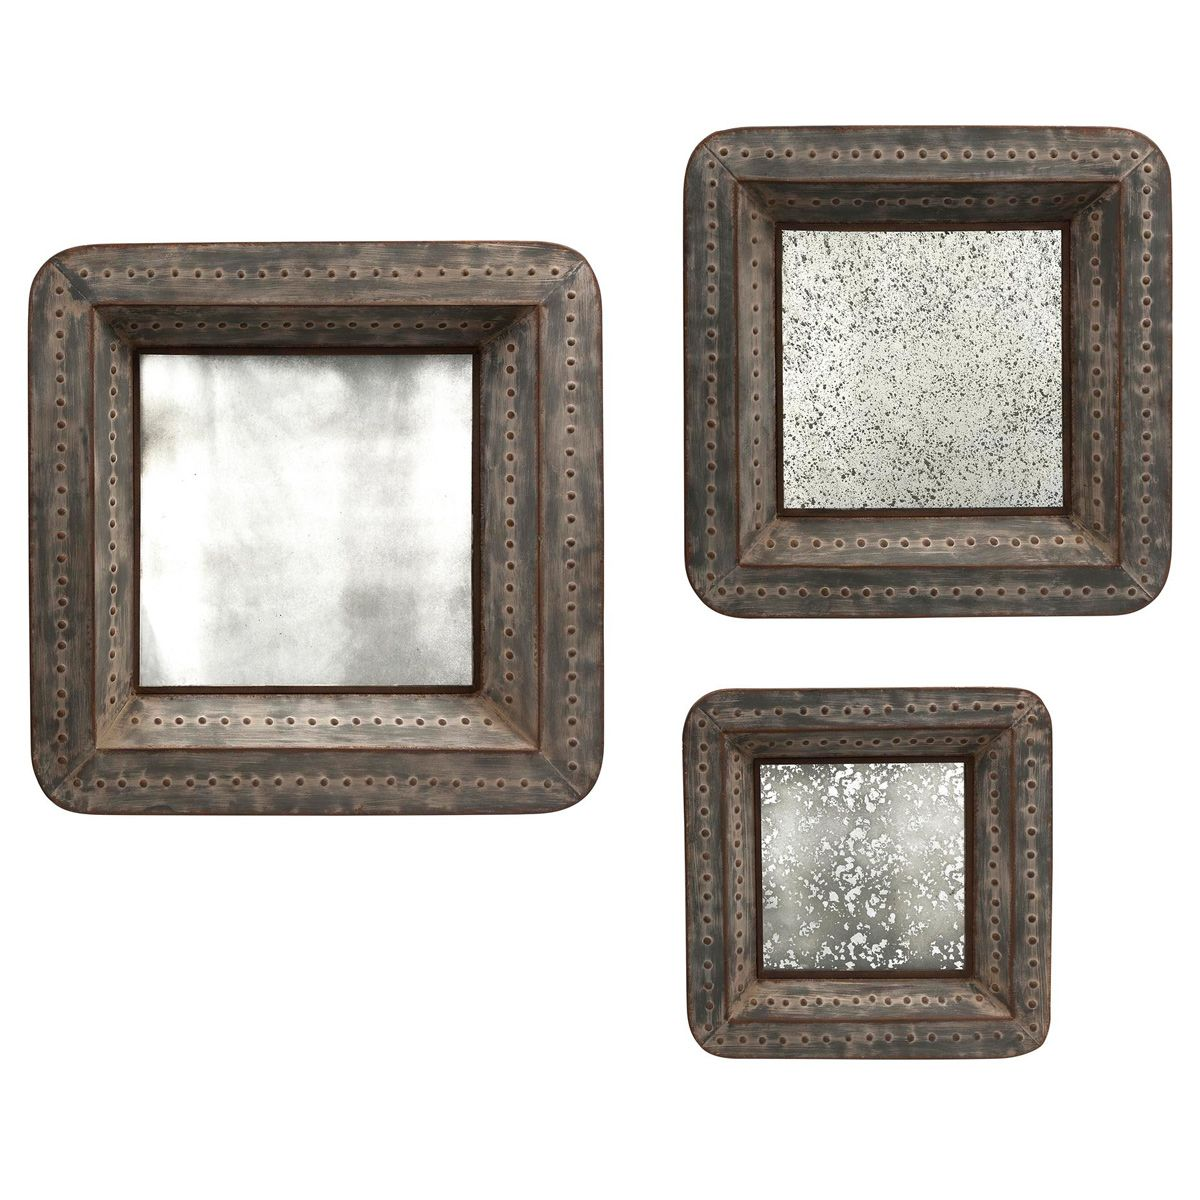 Norfolk Mirrored Wall Décor - Set of 3